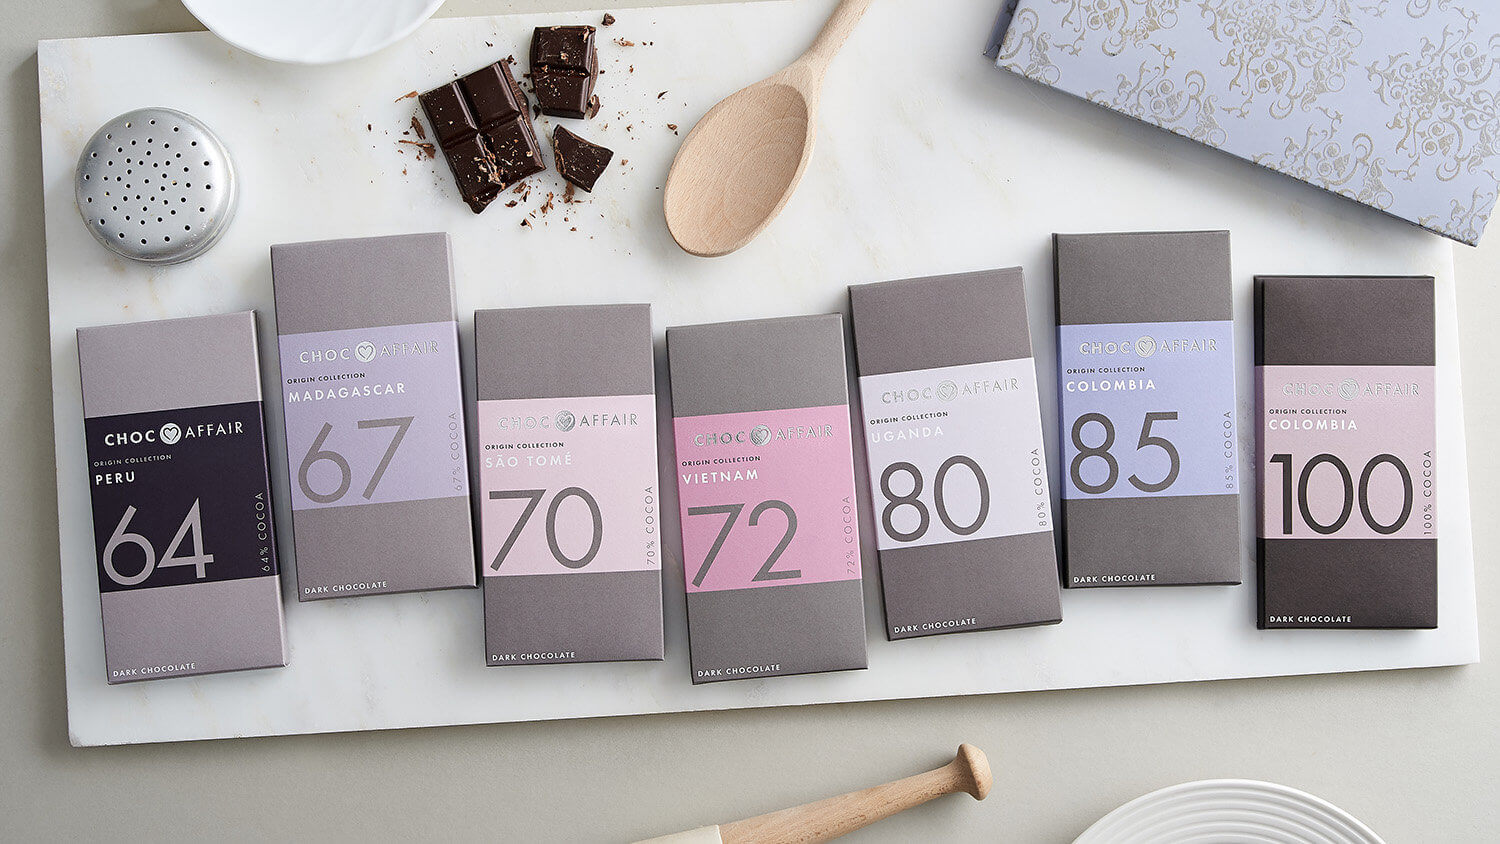 Brand product photography for chocolate maker Choc Affair styled with appropriate props